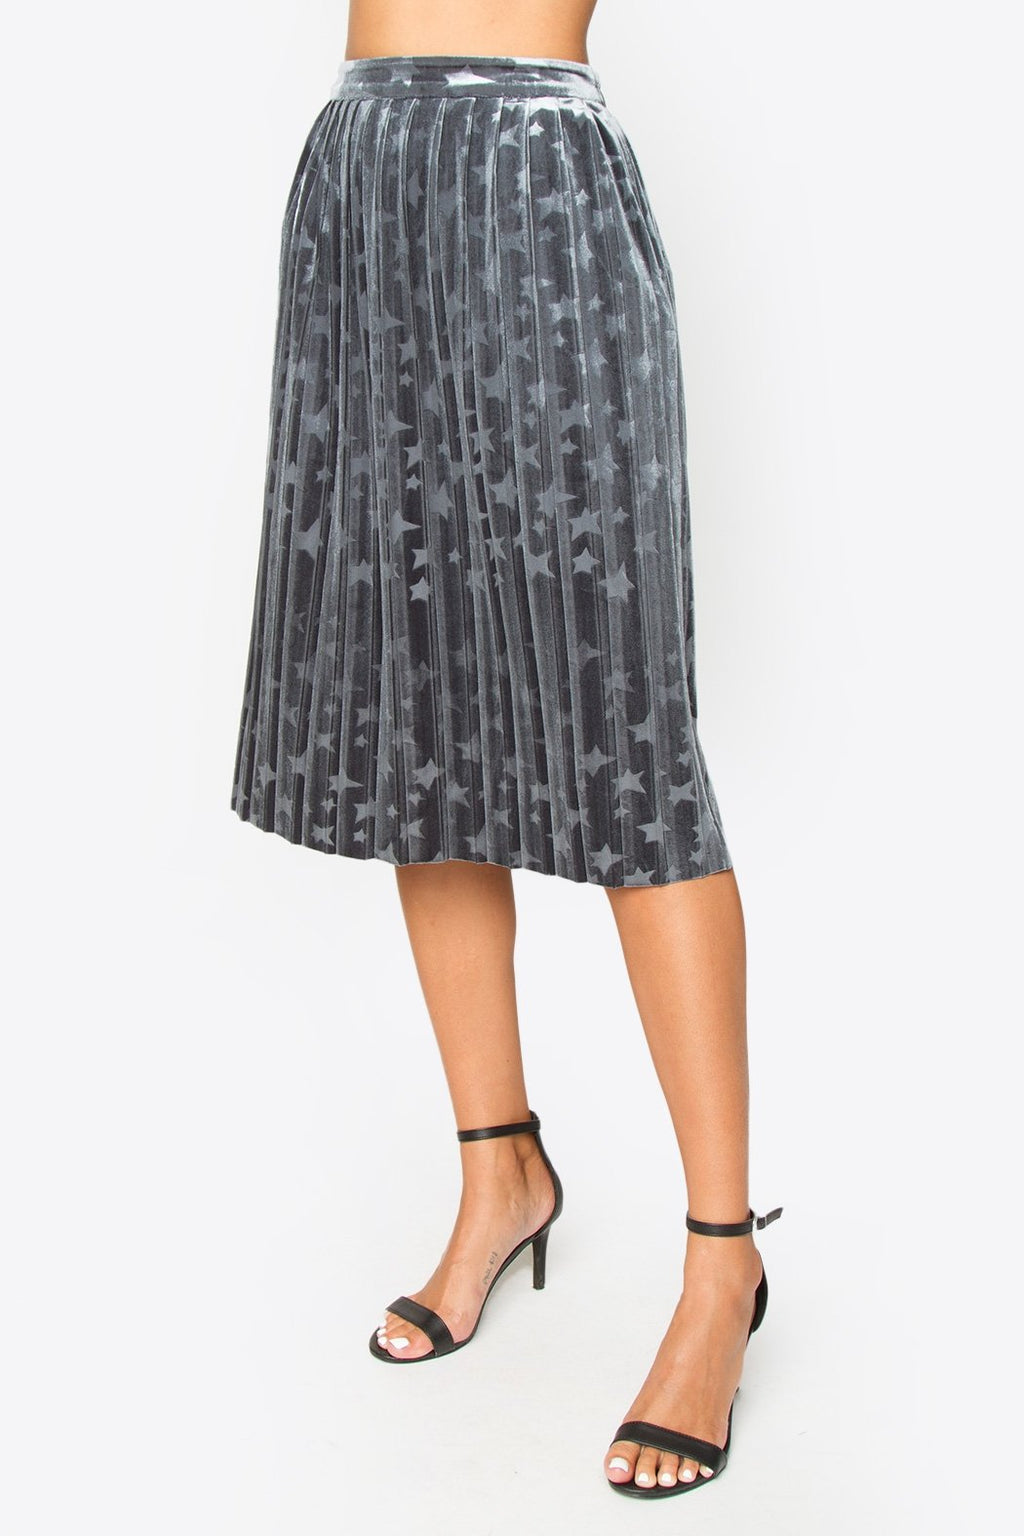 UNIKONCEPT: Lifestyle boutique; Image shows a grey a-line pleated skirt by sugar lips. The Gigi pleated skirts features a soft light grey colour with a subtle starred print throughout. The skirt features an elastic waistband with a side zipper and is knee length.